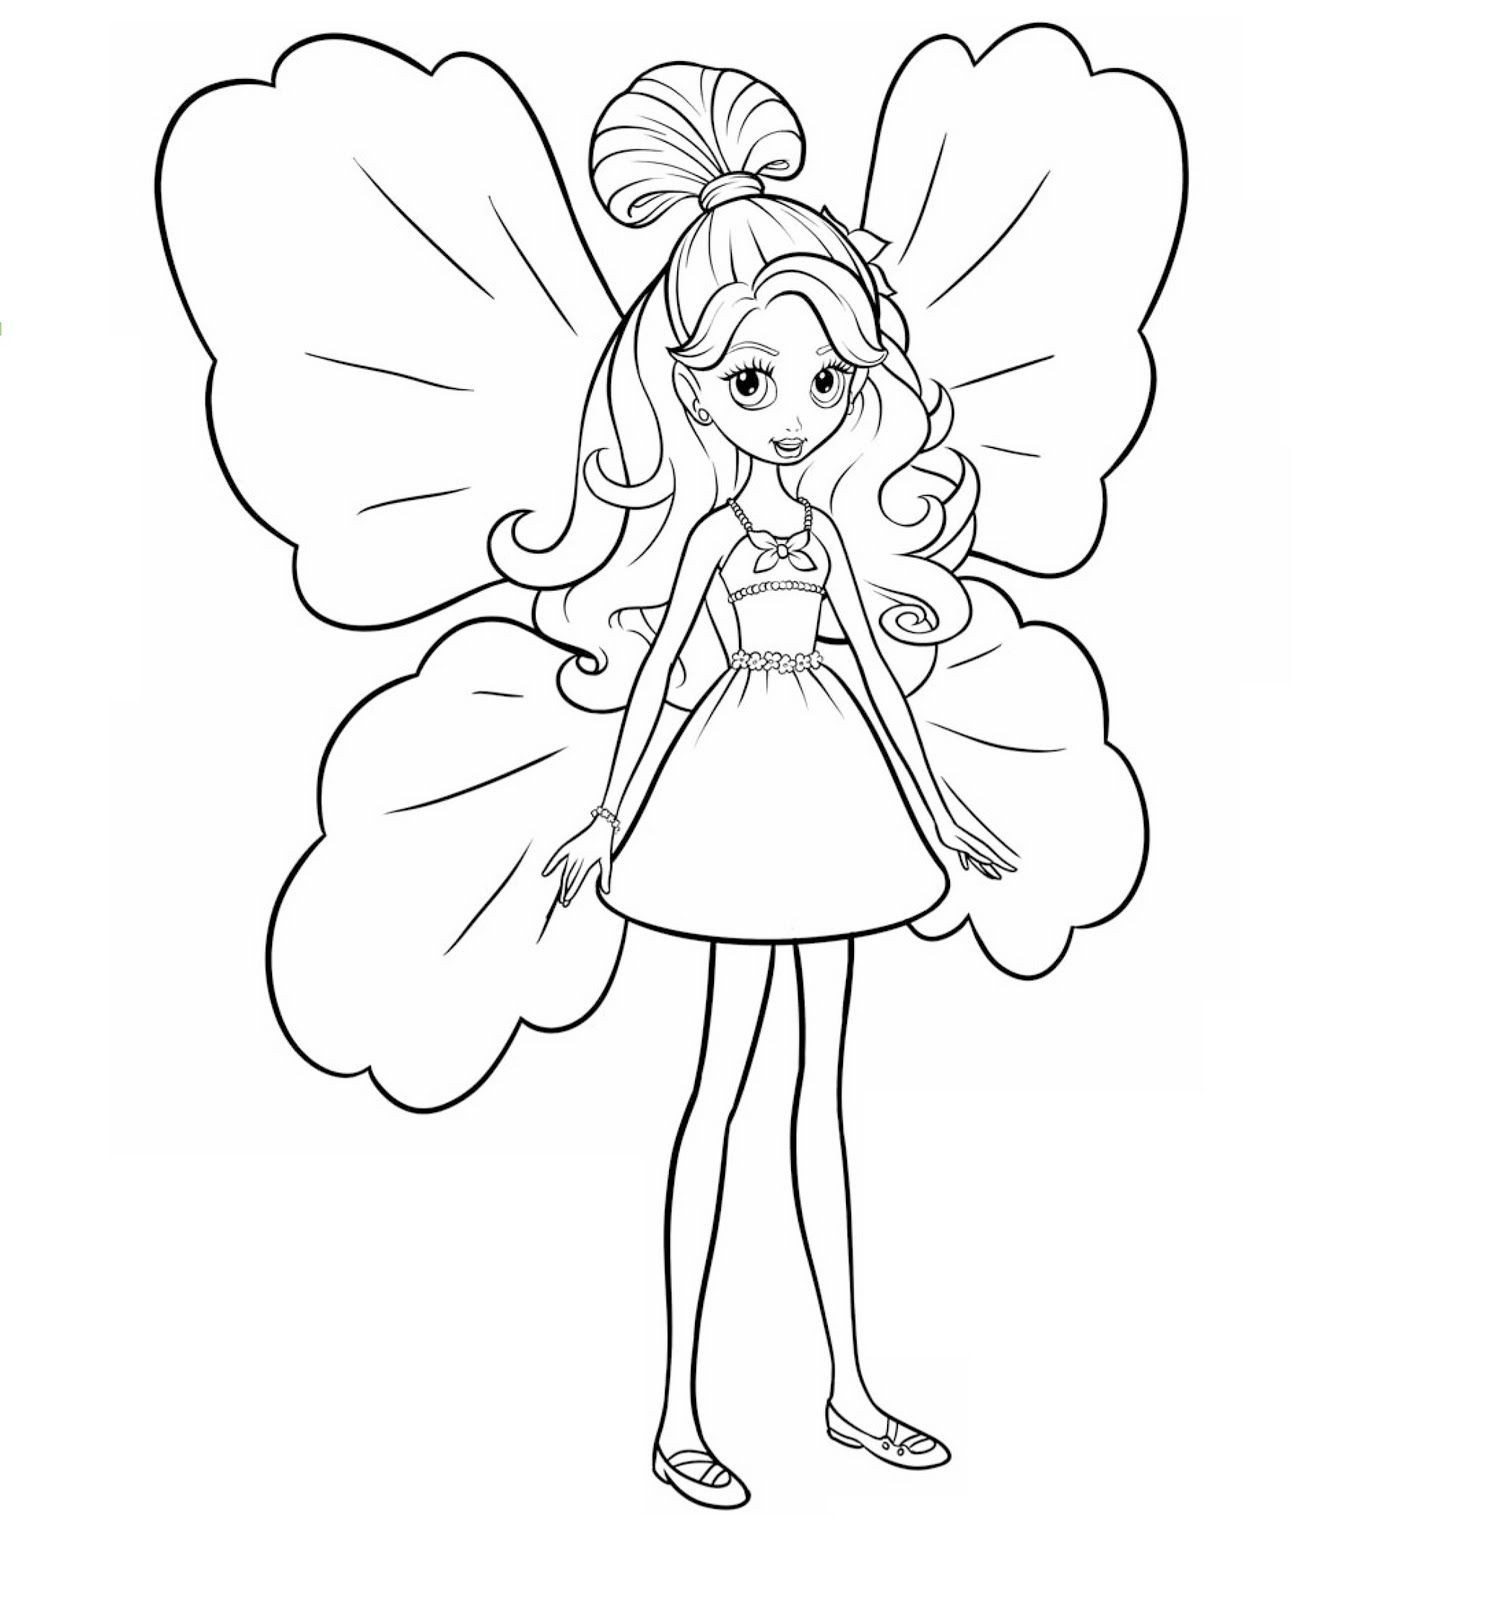 fairy girl | Barbie coloring pages, Fairy coloring pages ...